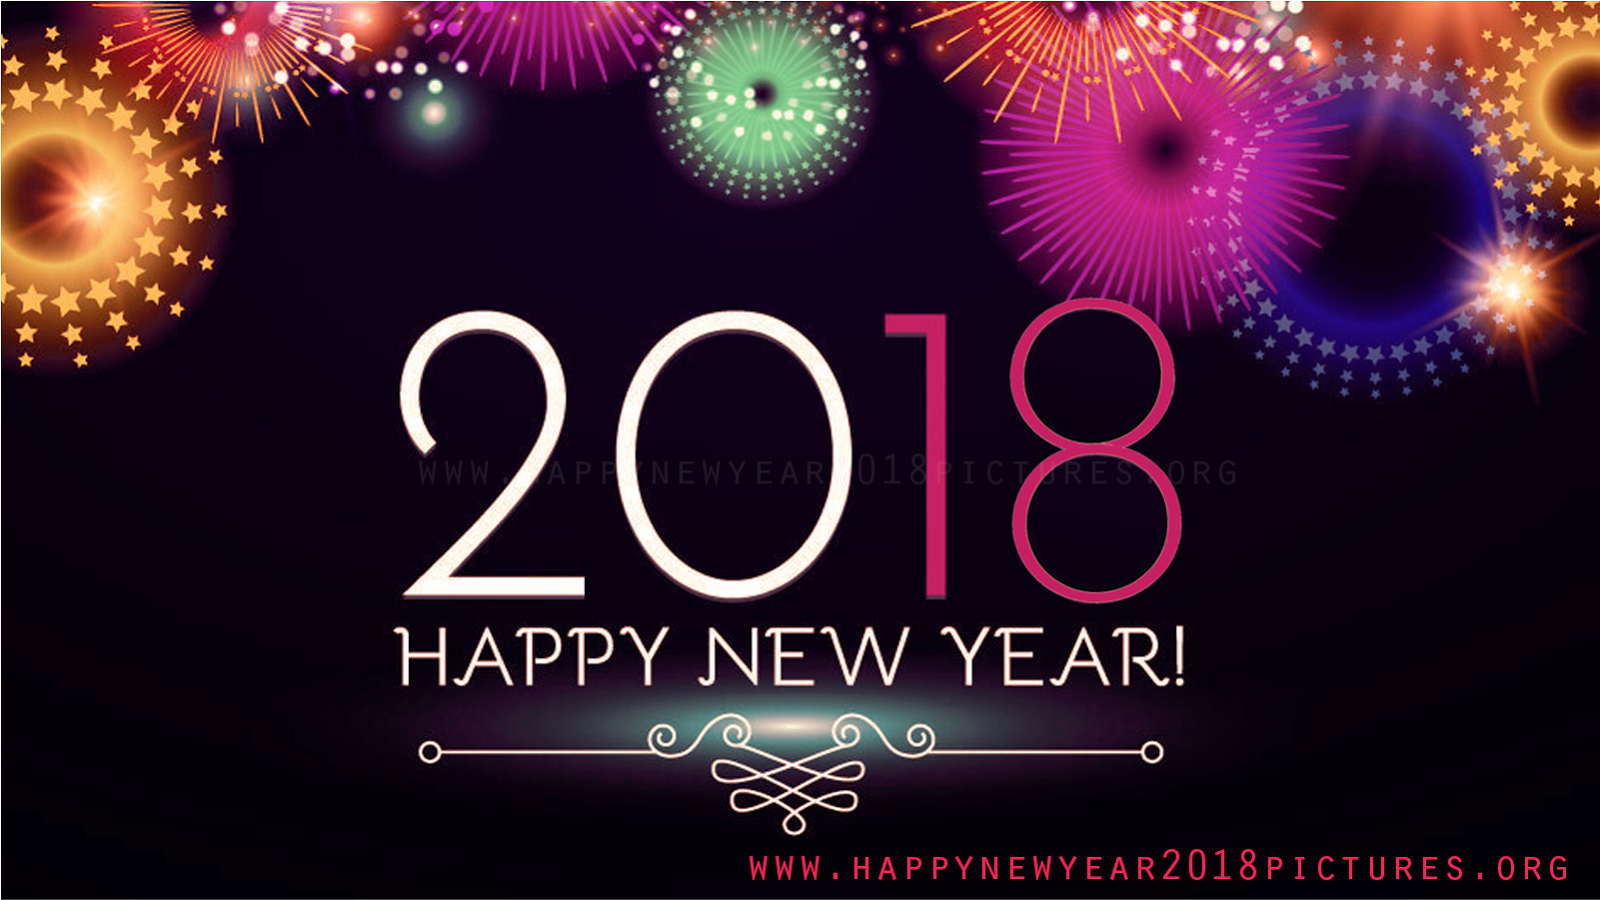 ... Mobile Backgrounds And Wallpapers Photo For 2018. Happy New Year 2018  Photos